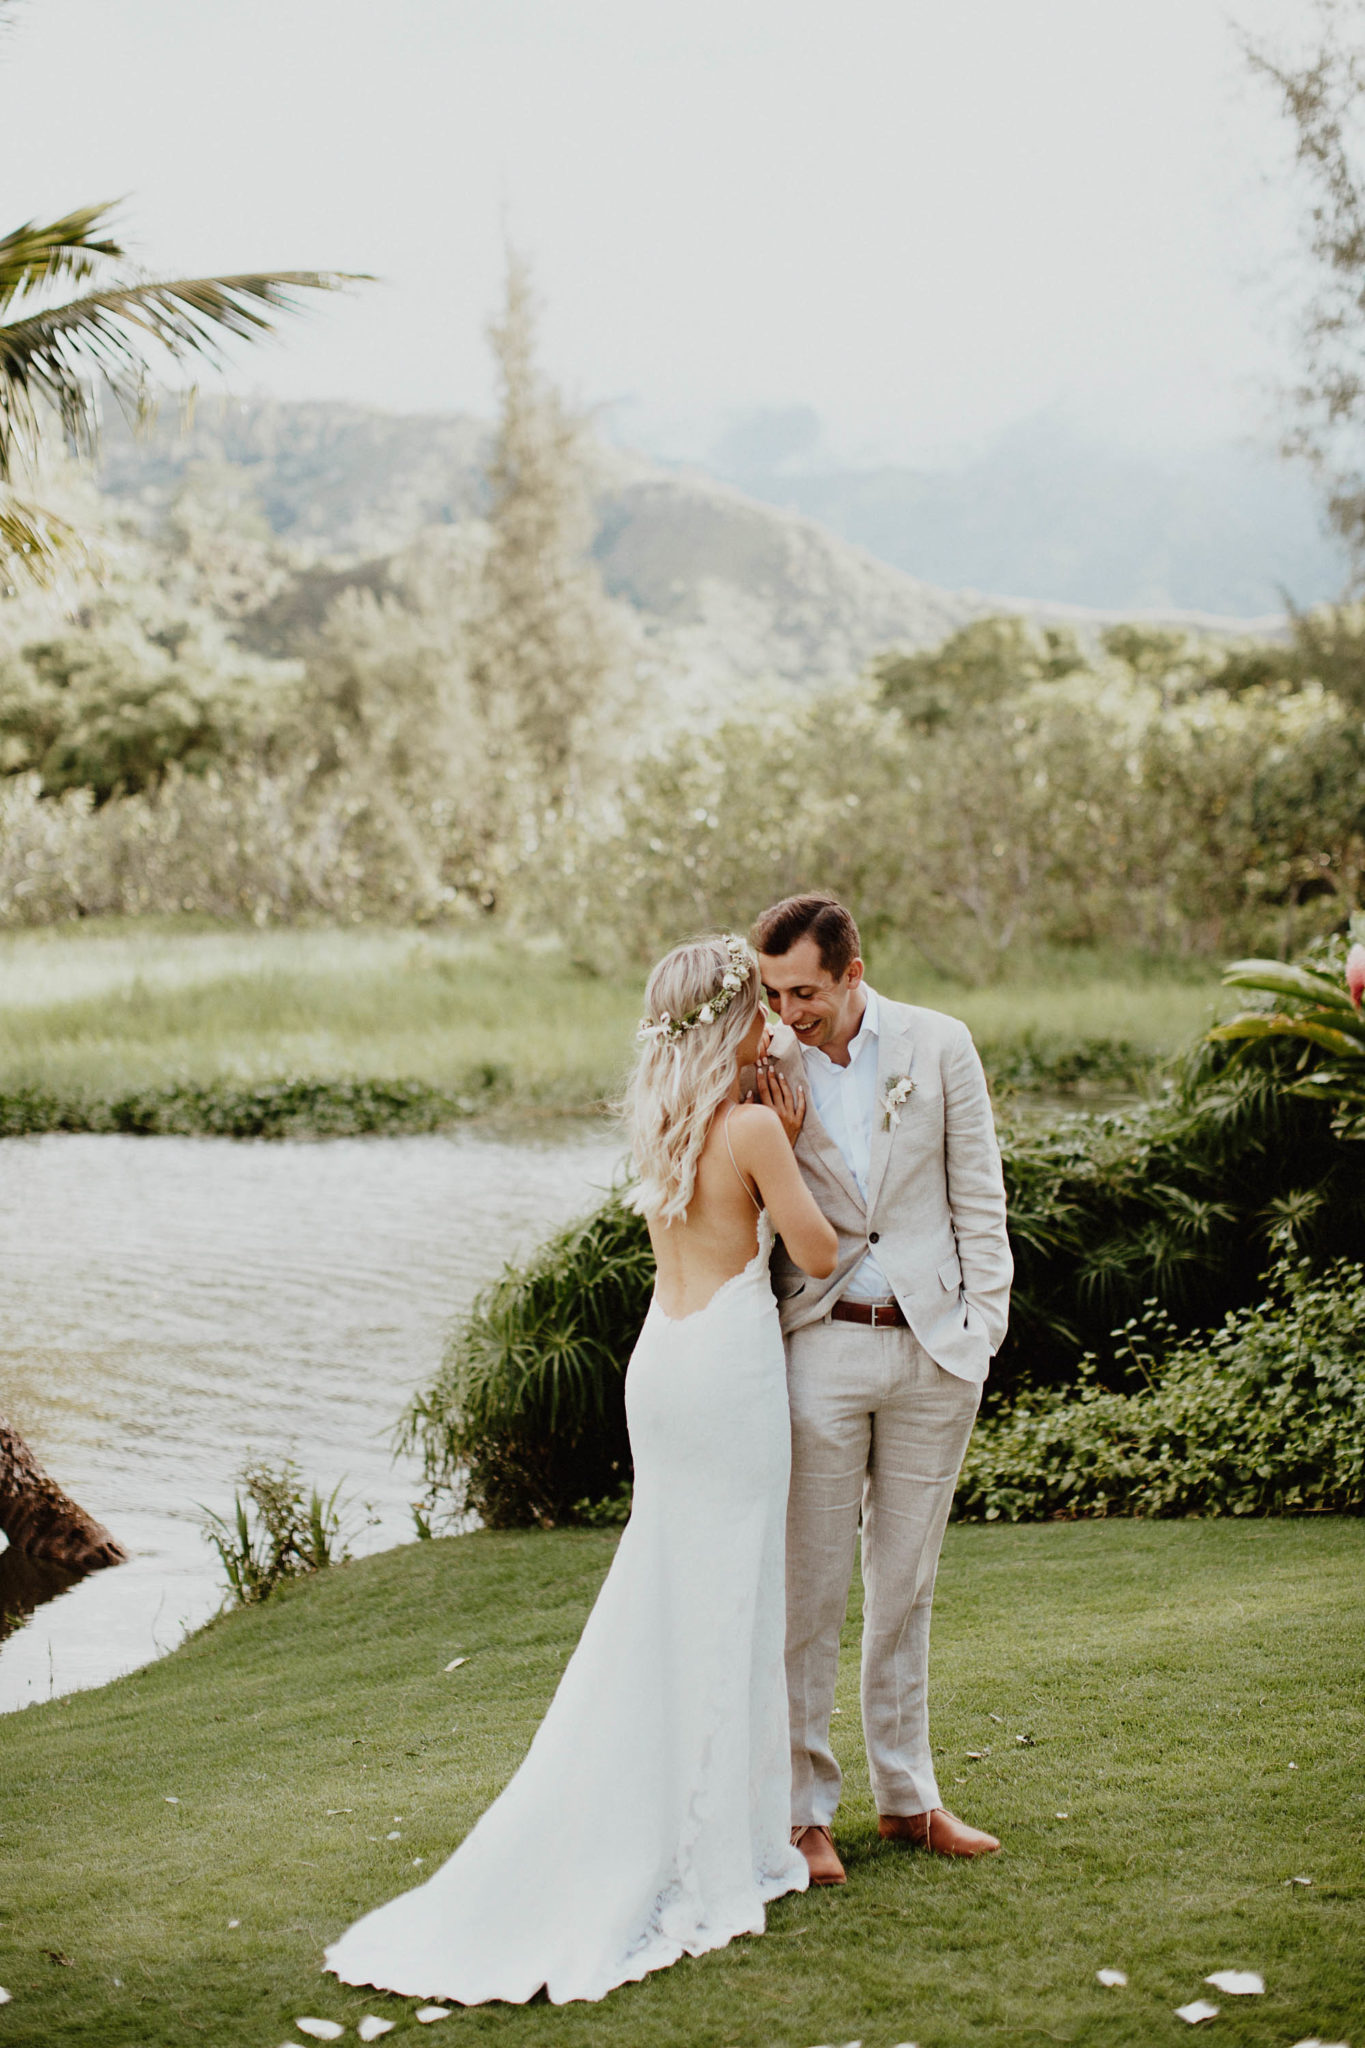 Wedding photos with backless white lace wedding dress and flower crown